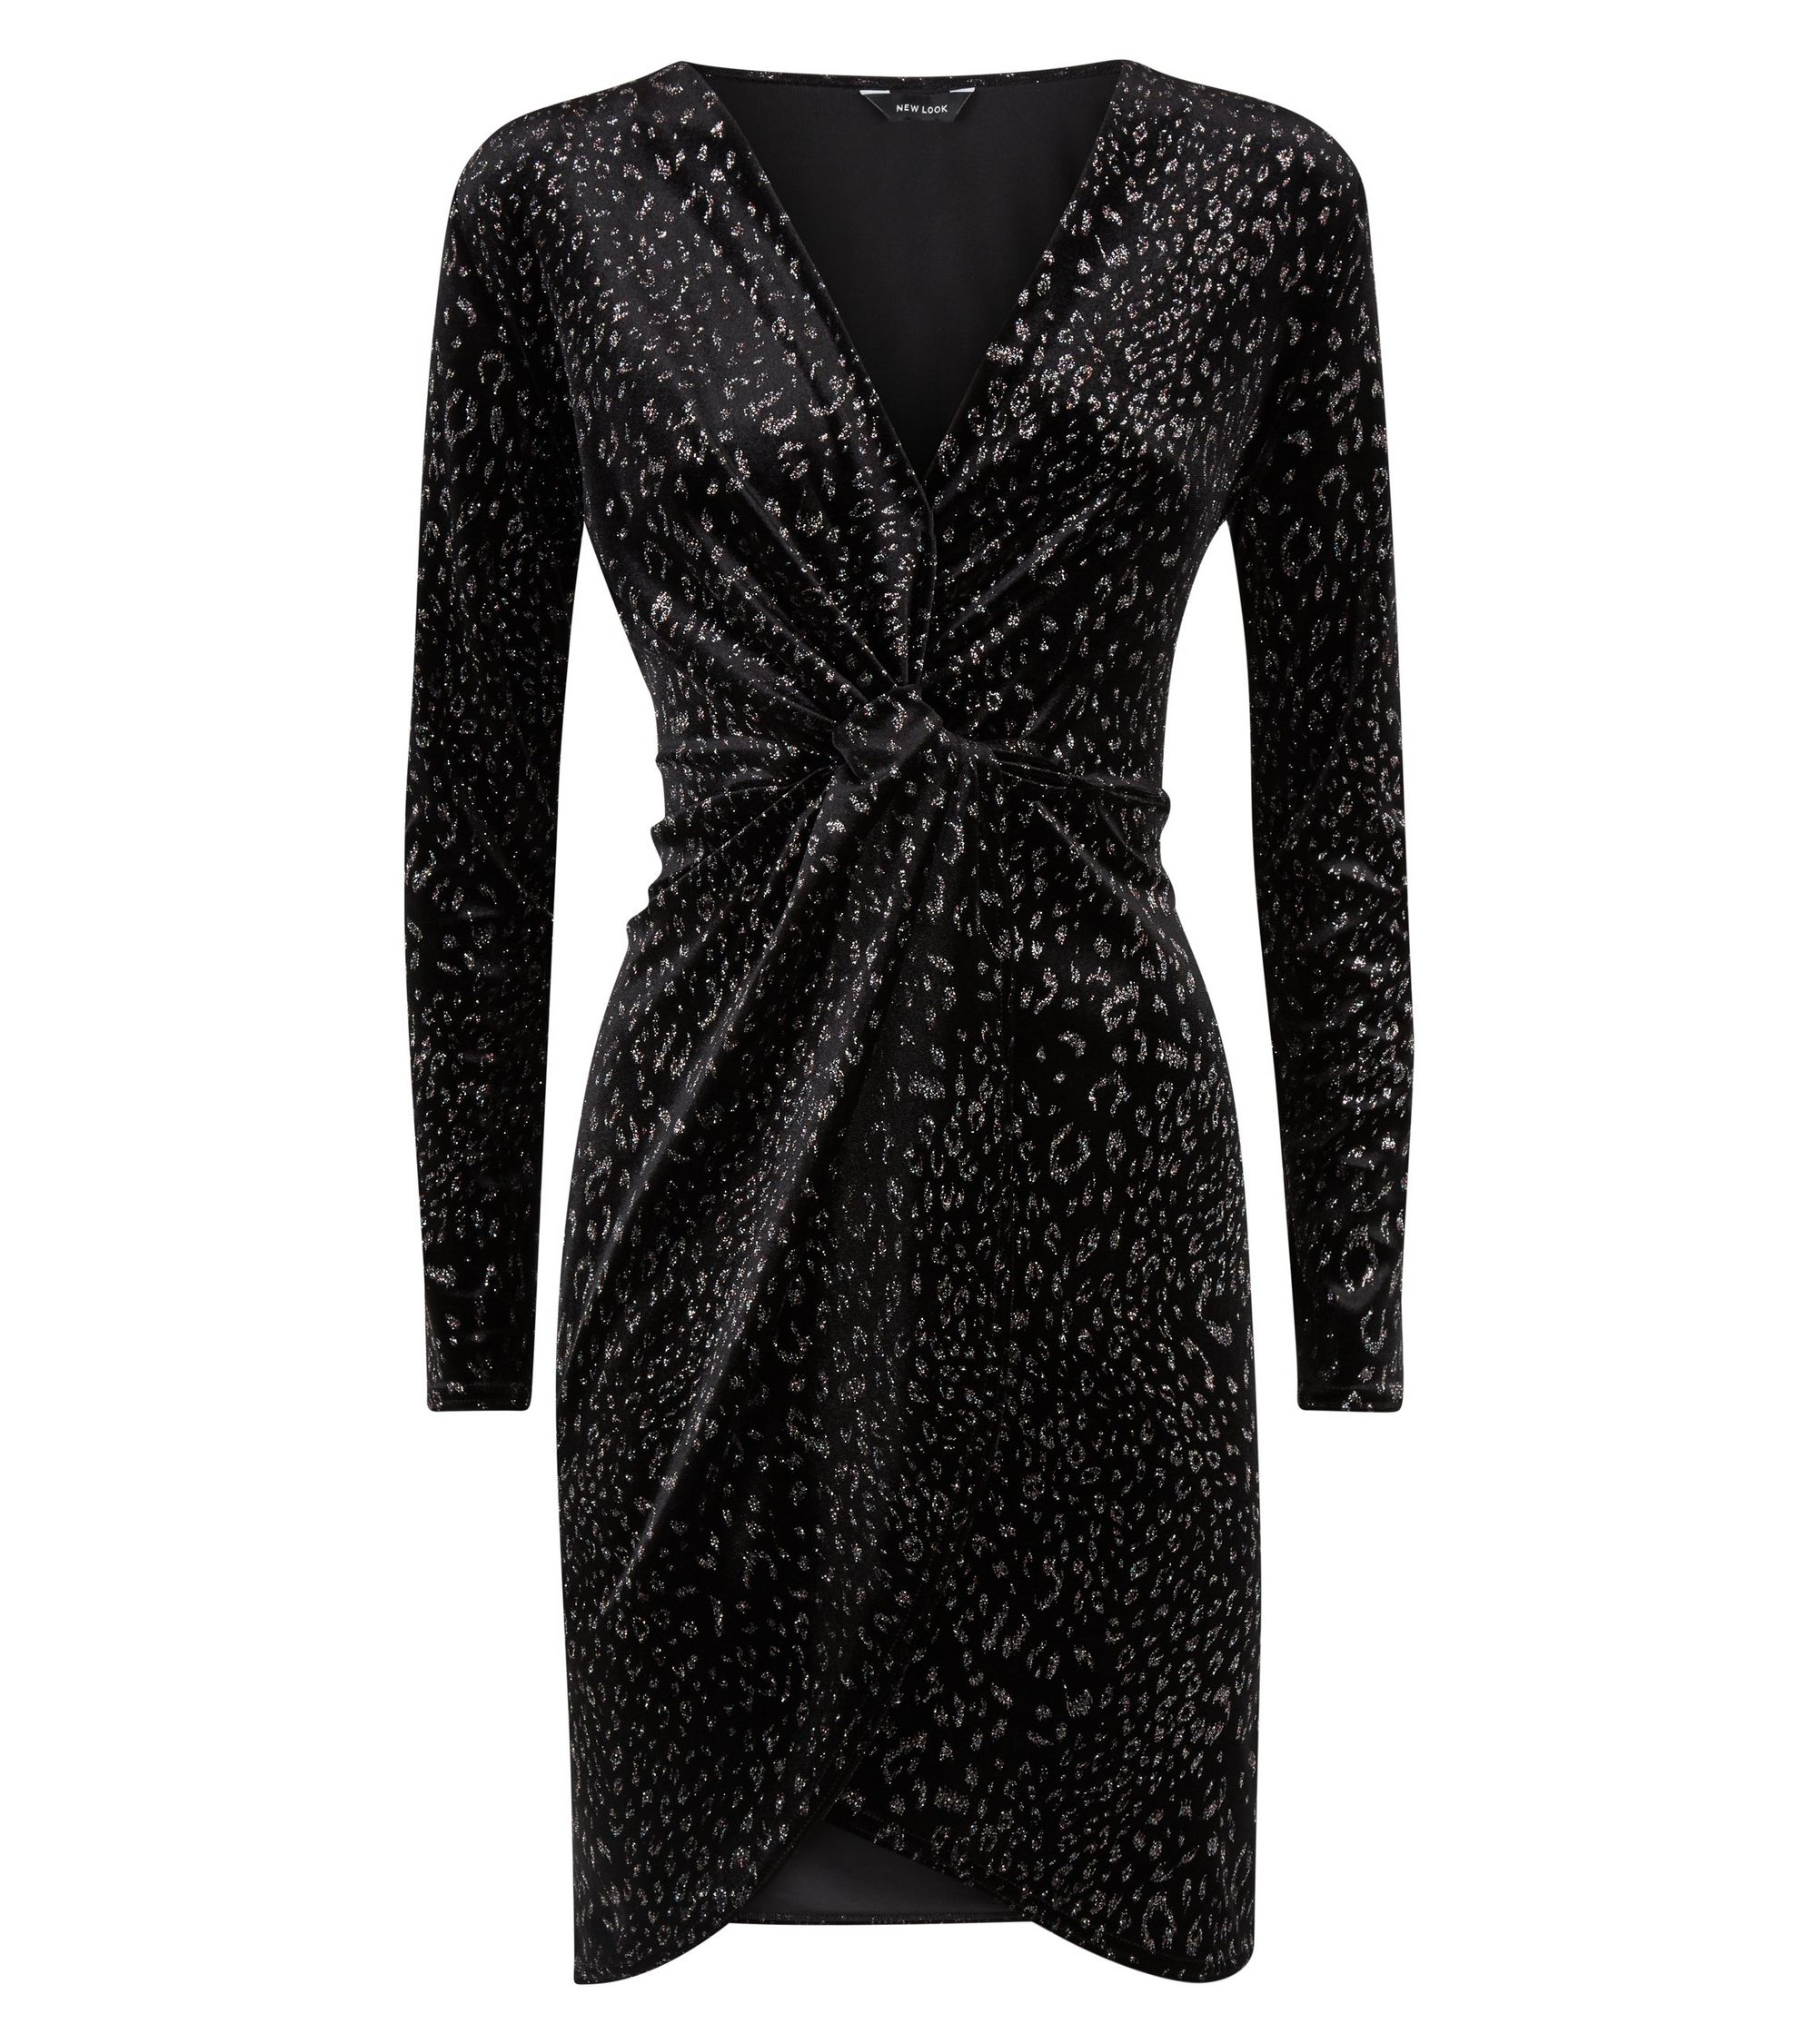 48d9d276b718 New Look Black Velvet Glitter Leopard Print Wrap Dress at £22.49 ...